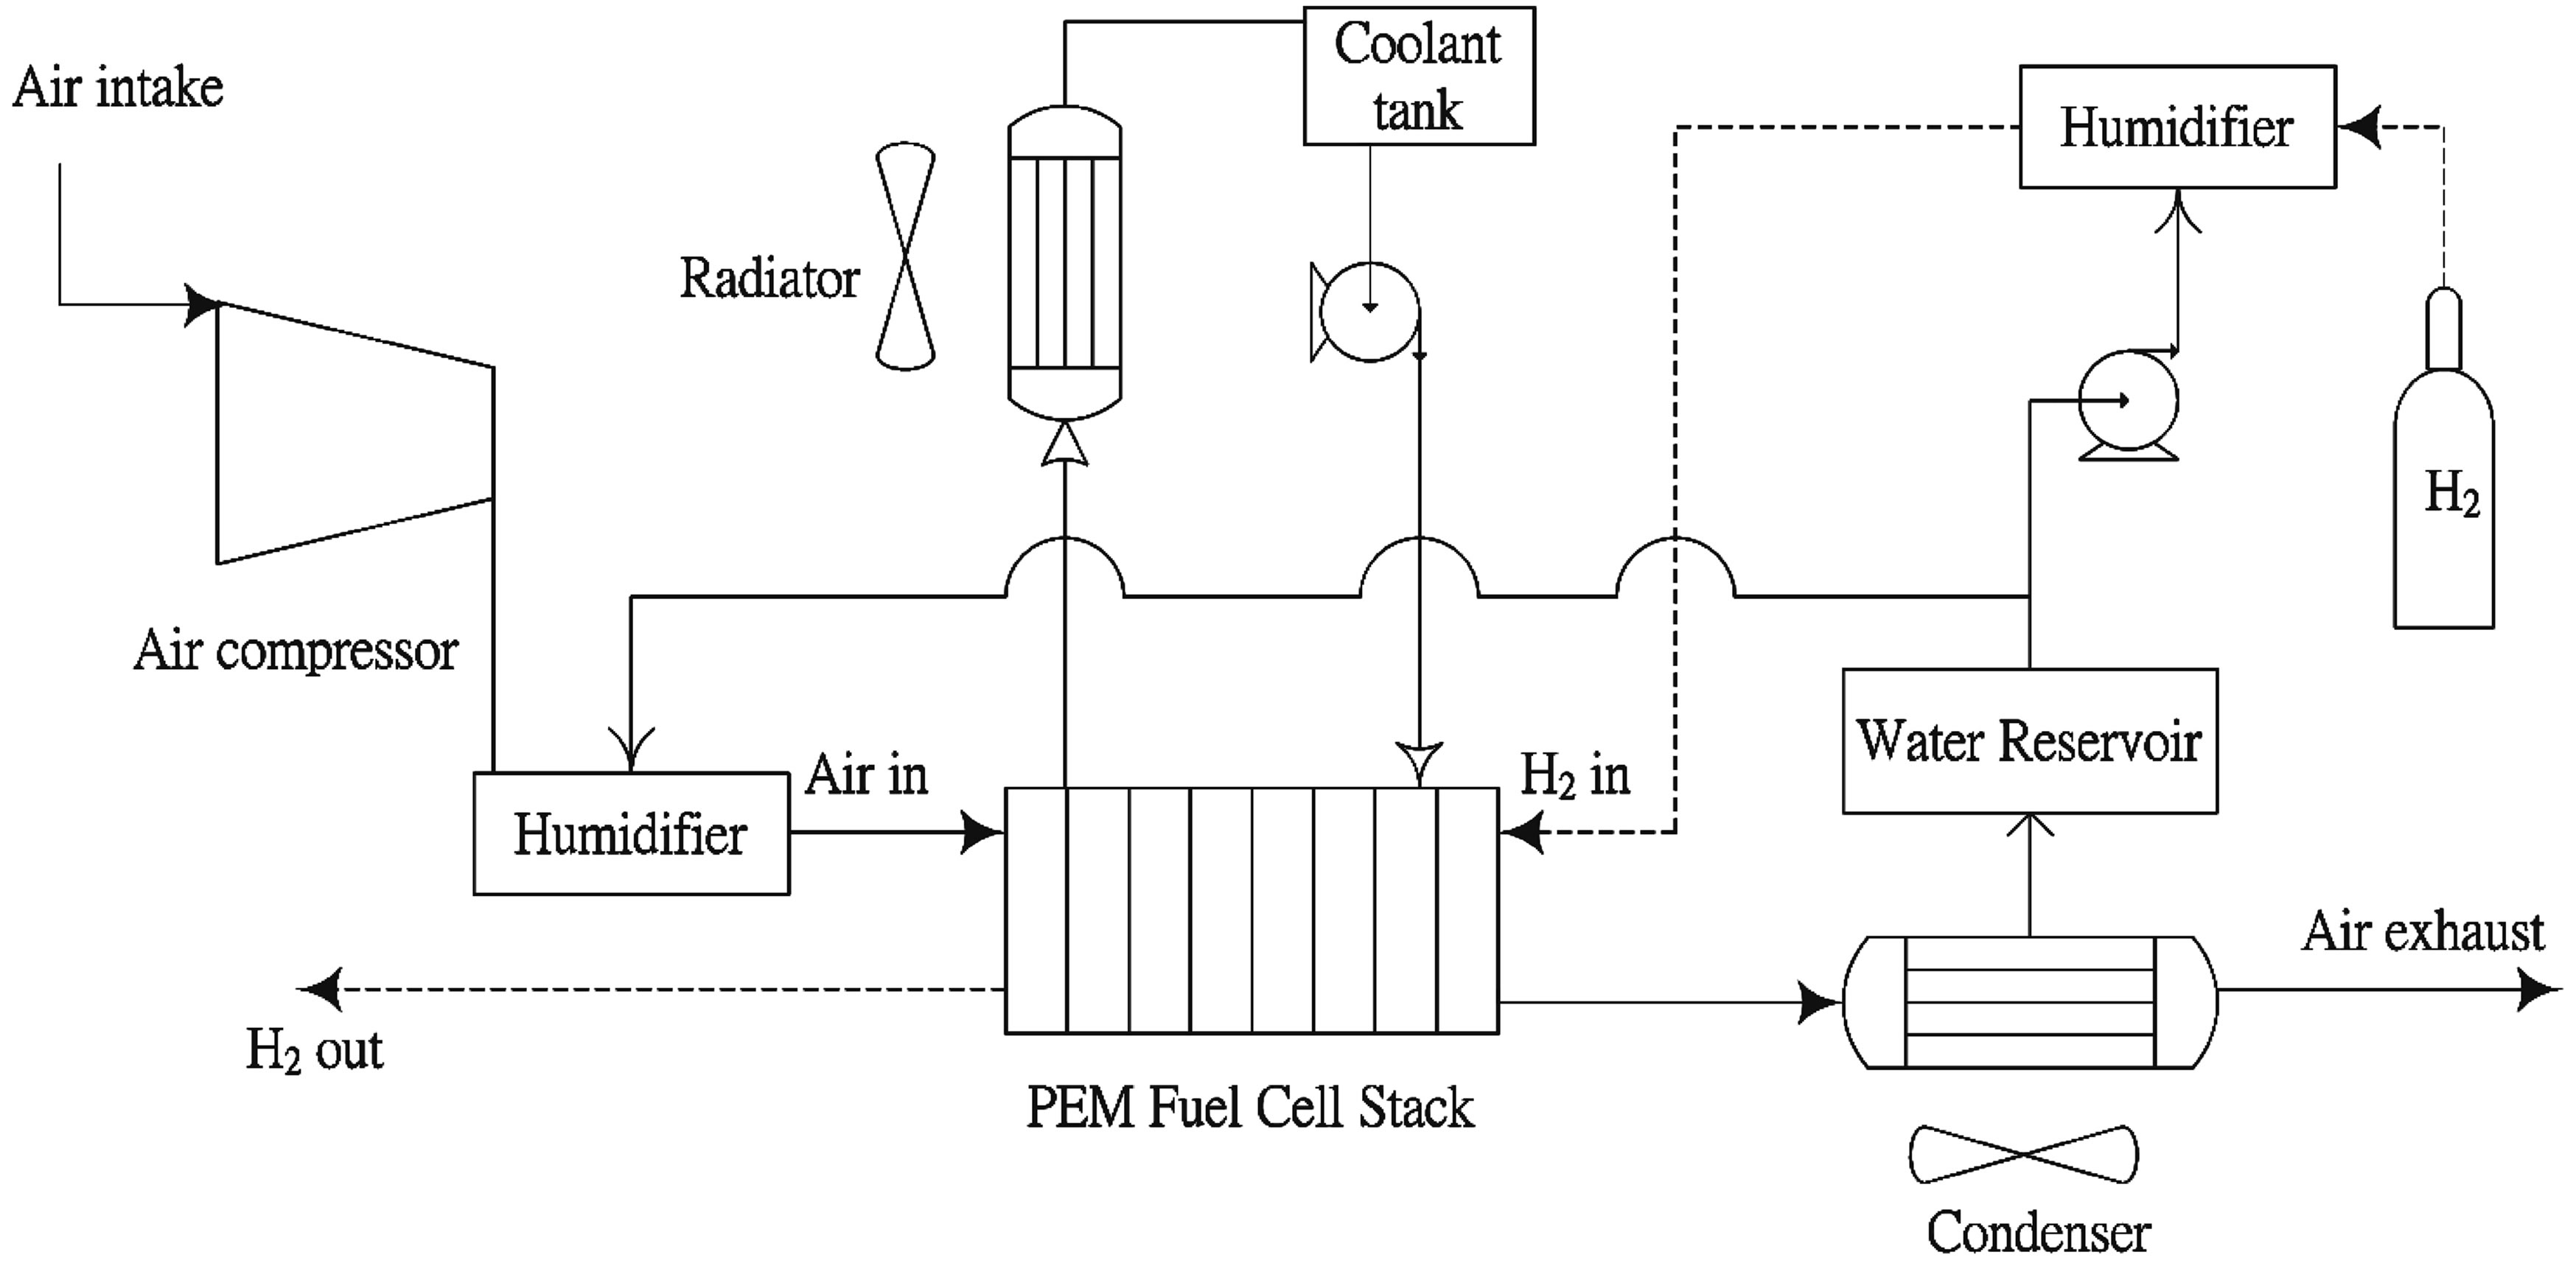 Ultrasonic Spray Coating For Proton Exchange Membrane Fuel Cell Fuelcell Battery Tester Schematic The Of System